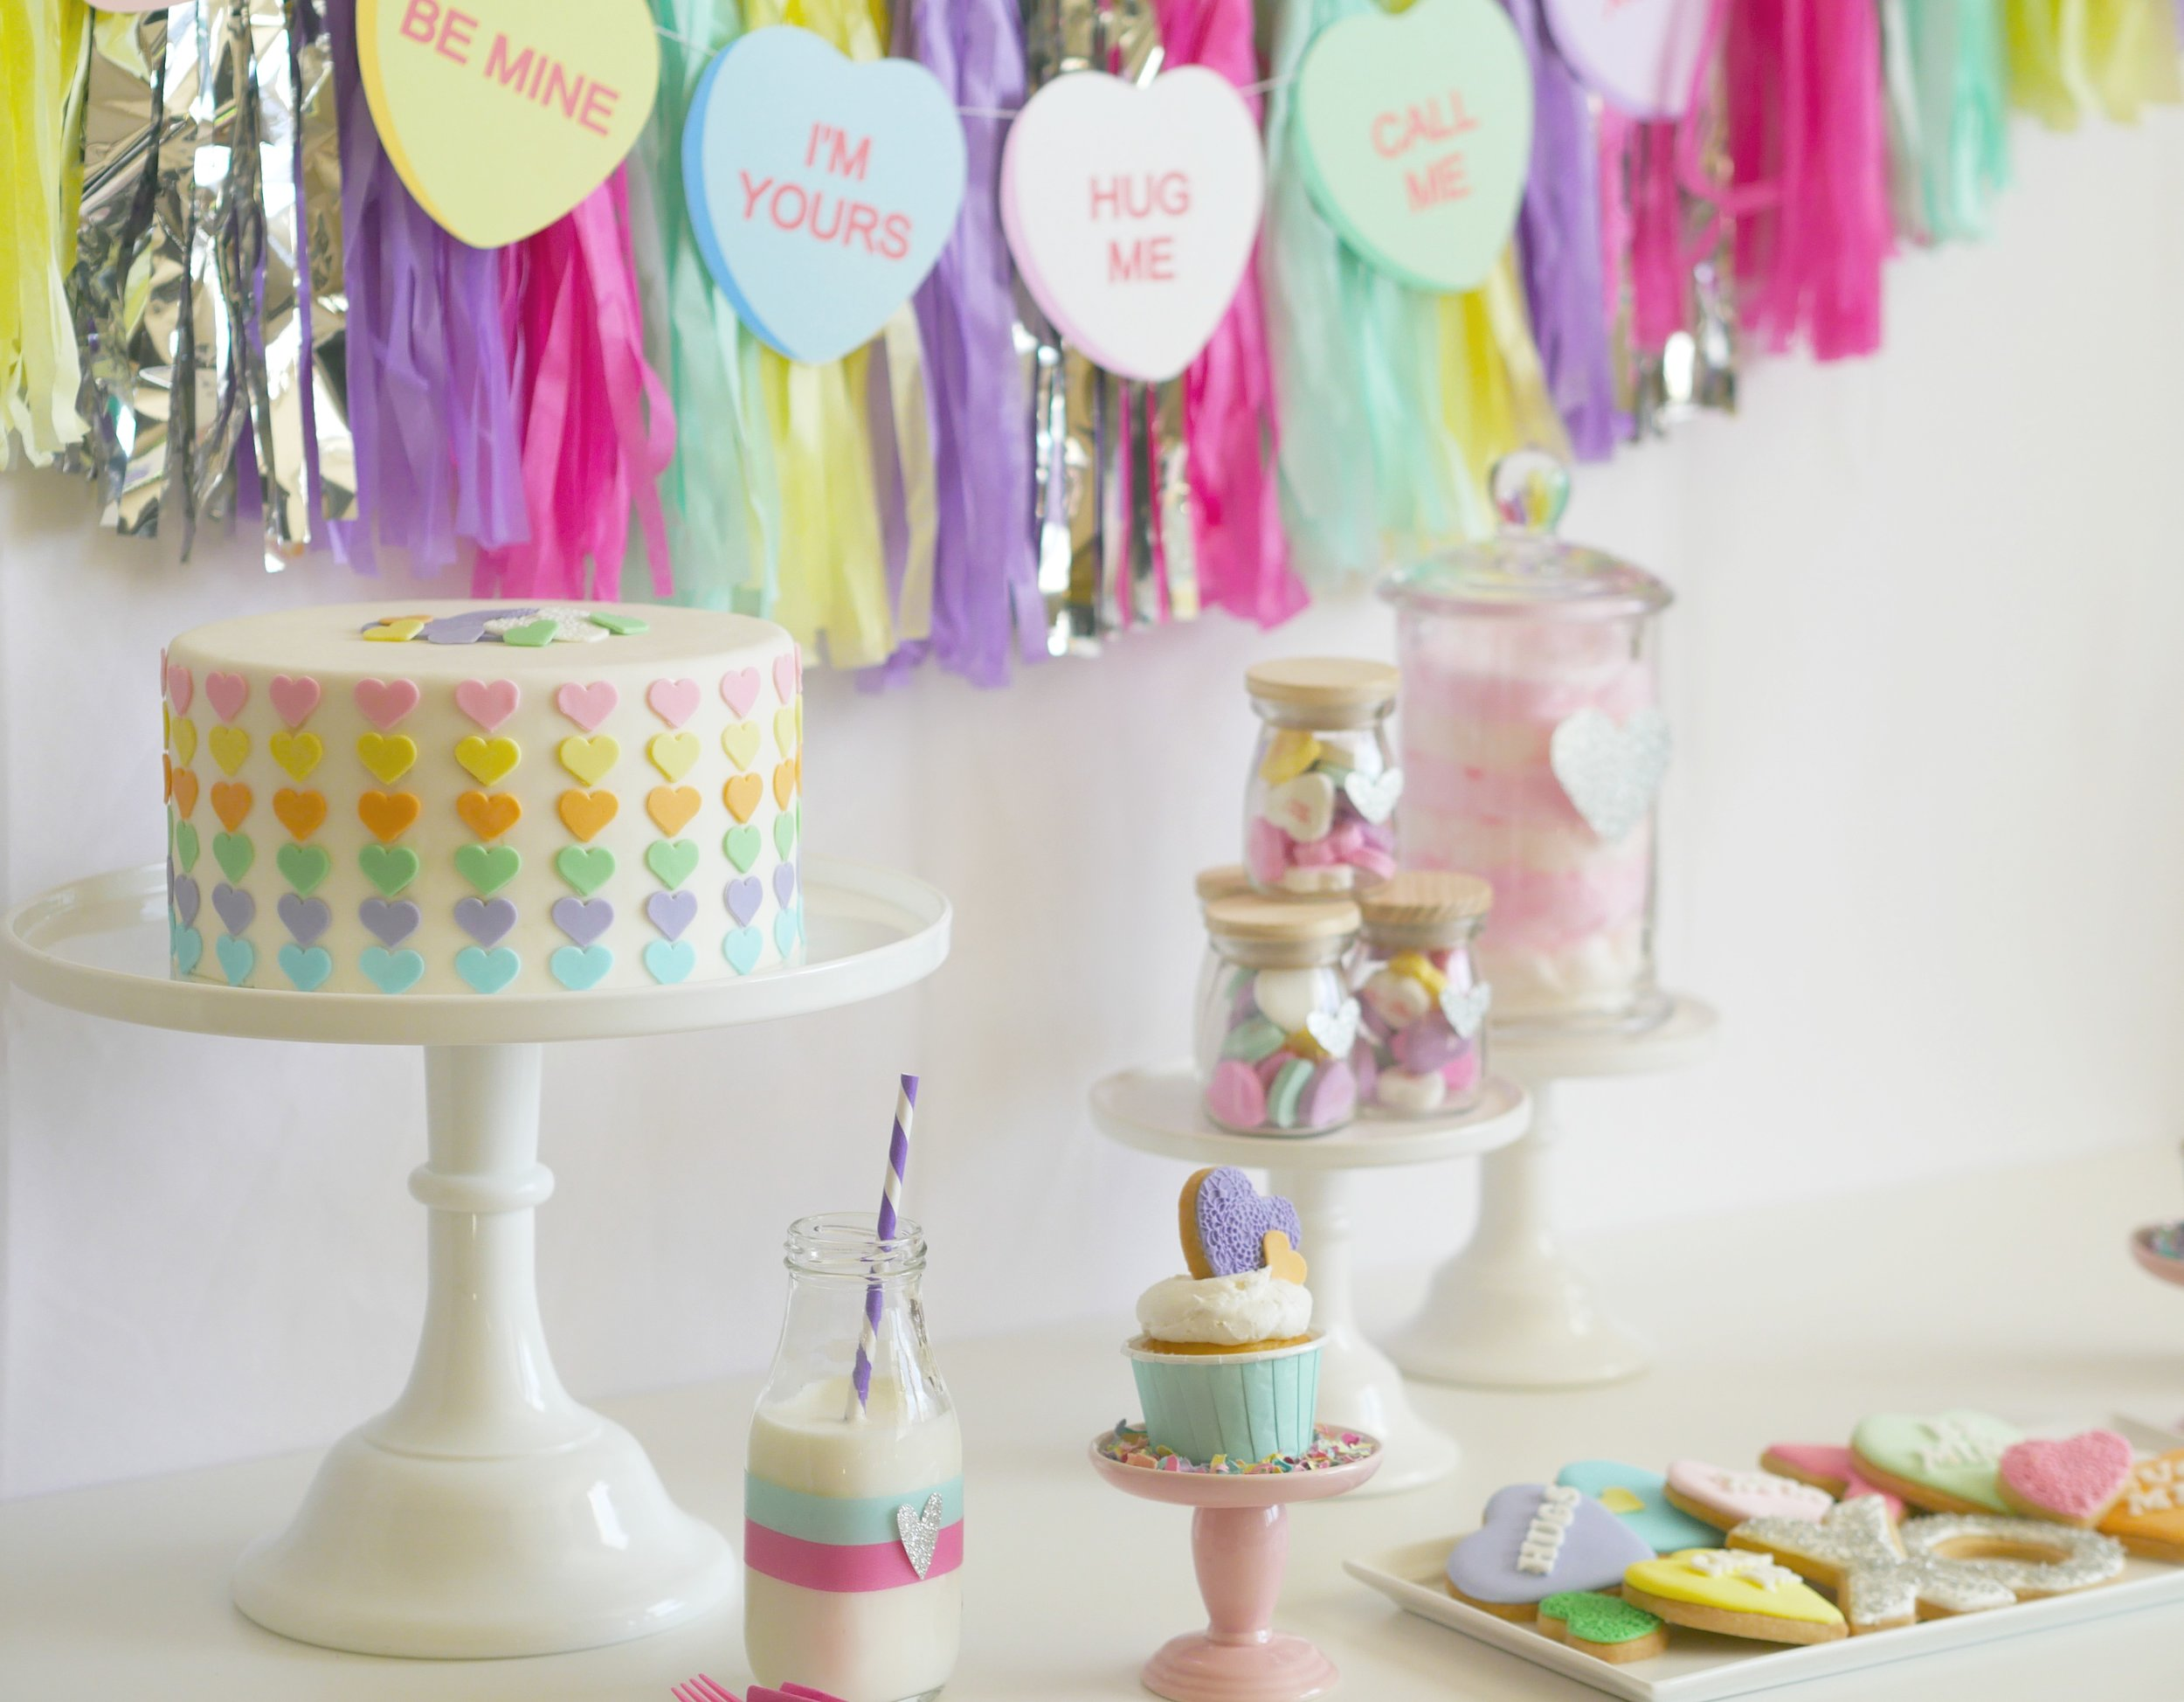 Valentine's party ideas / valentine's party decor / valentine's dessert ideas / valentine's dessert table / Conversation hearts party idea / Valentine's Party Idea for kids /Styled by Carolina from MINT Event design / www.minteventdesign.com.